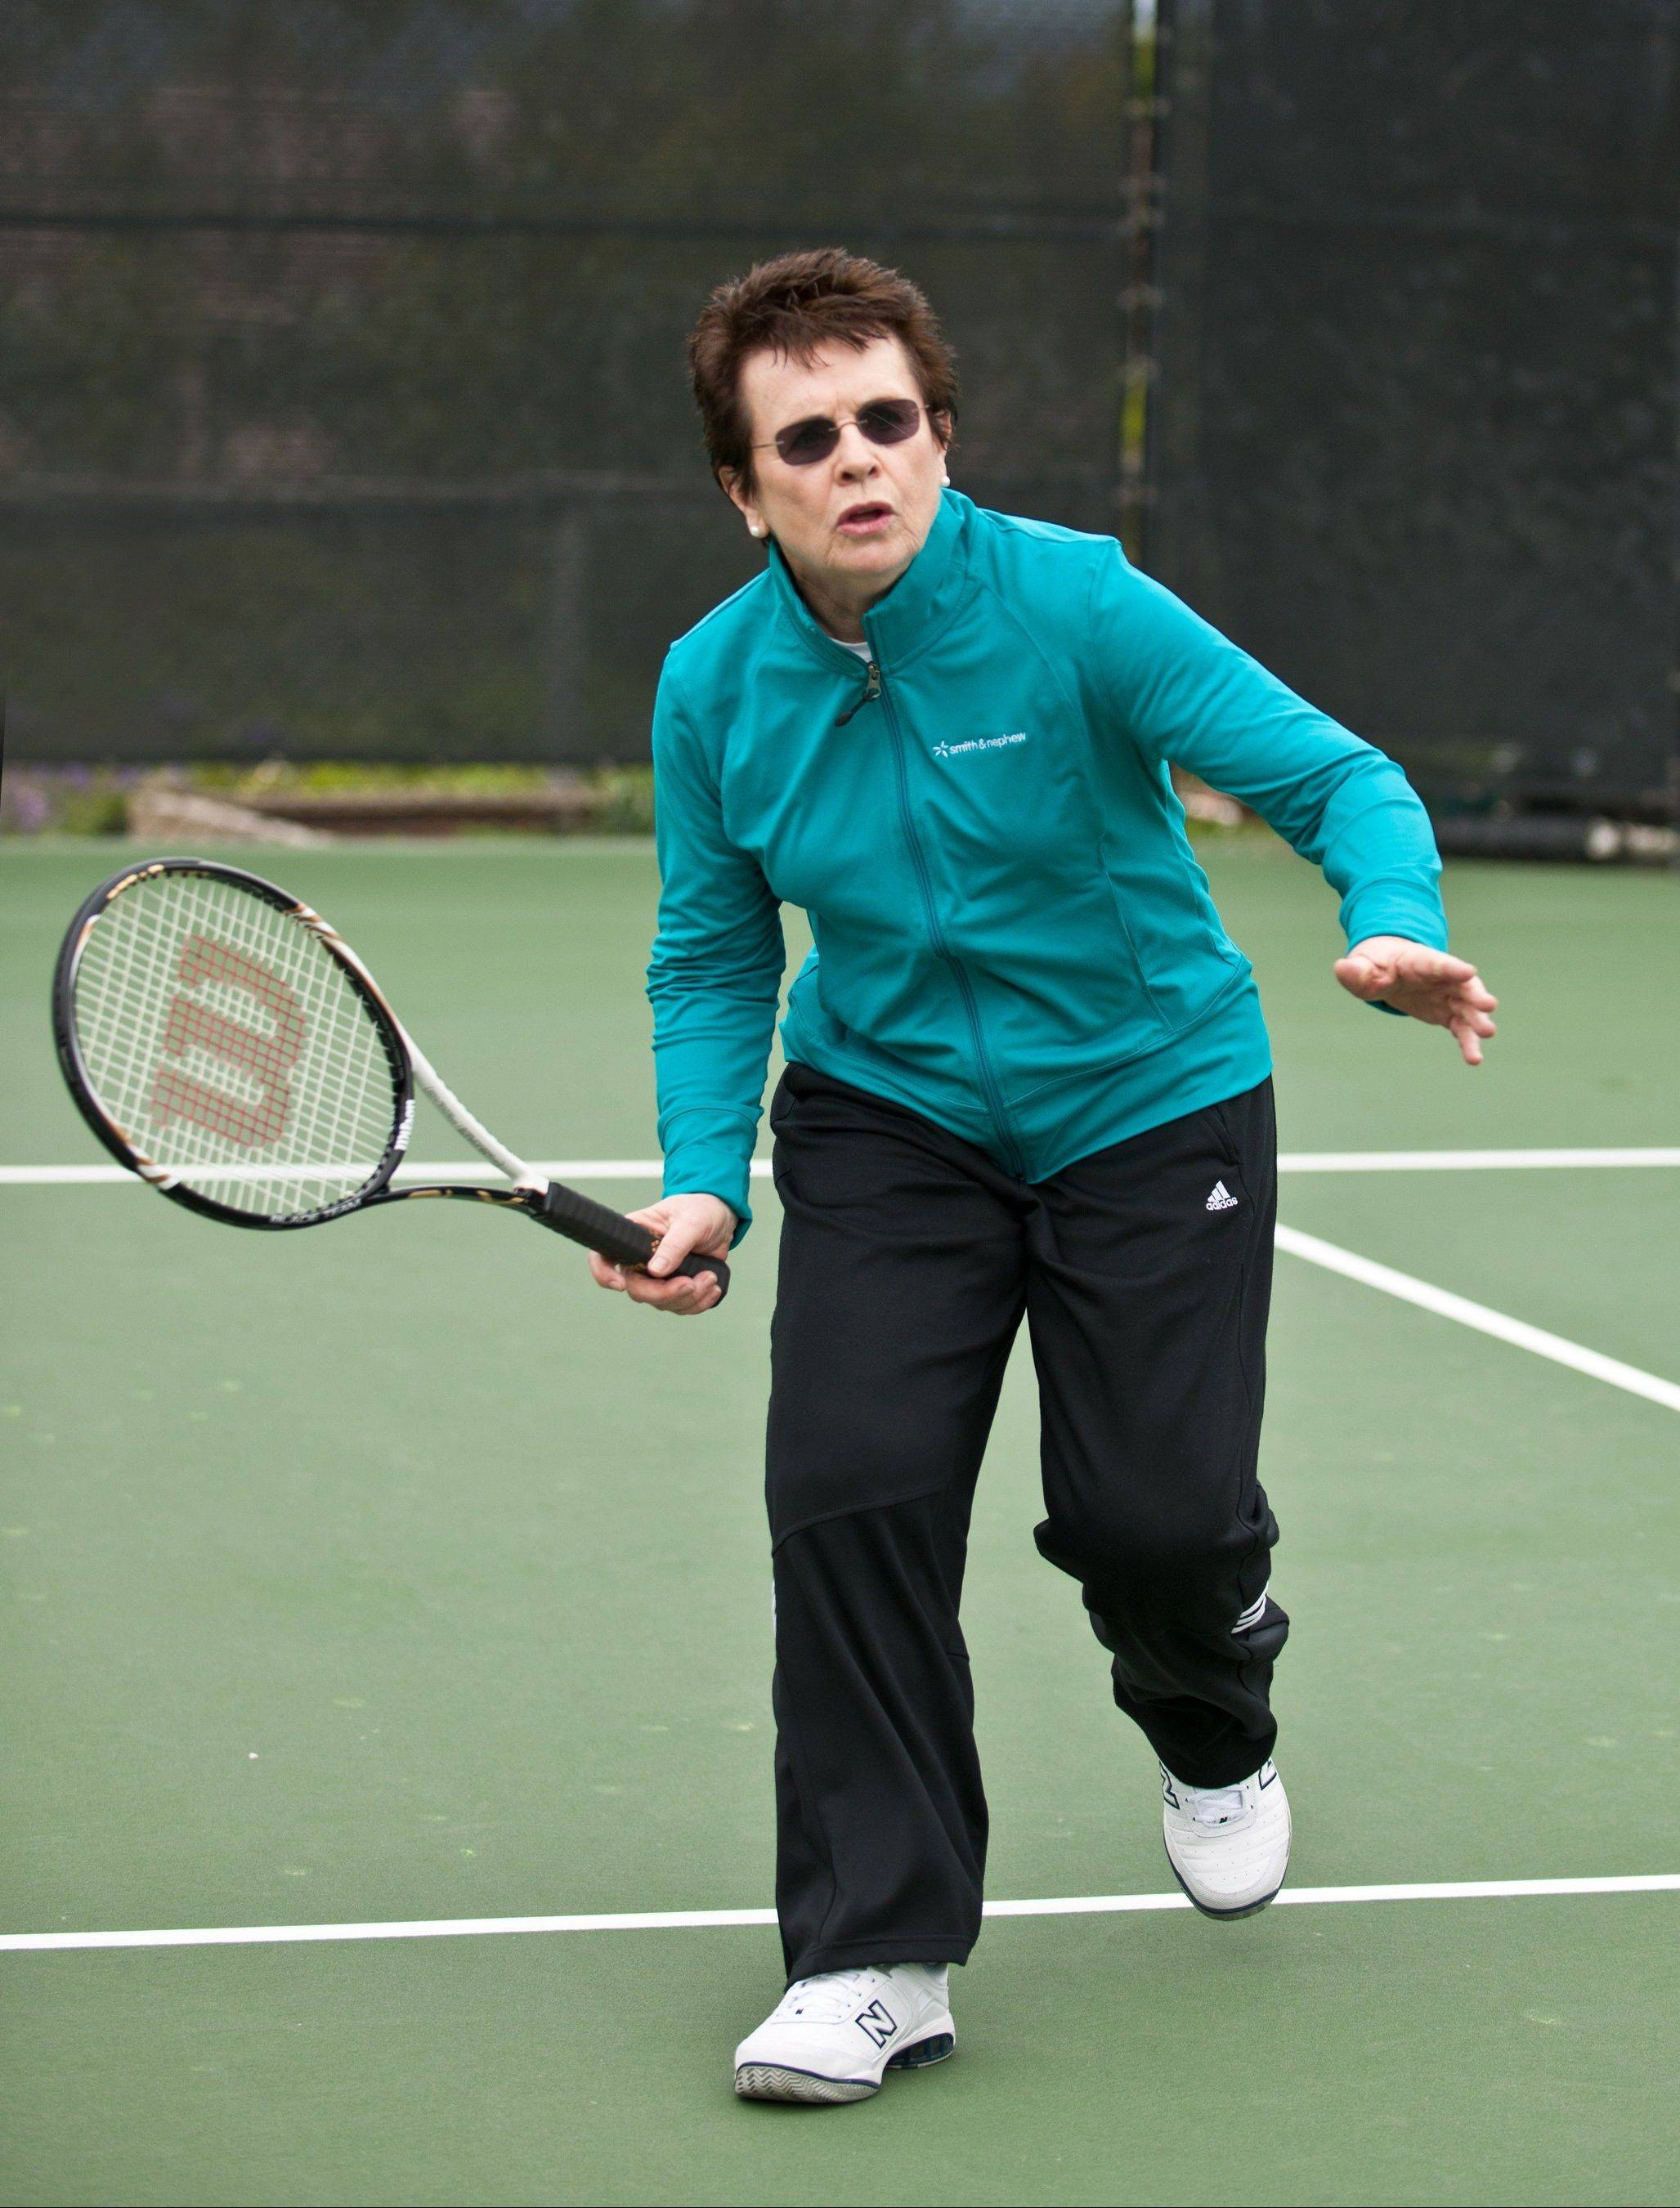 Tennis great Billie Jean King is back playing tennis with gusto after double-knee replacement surgery.